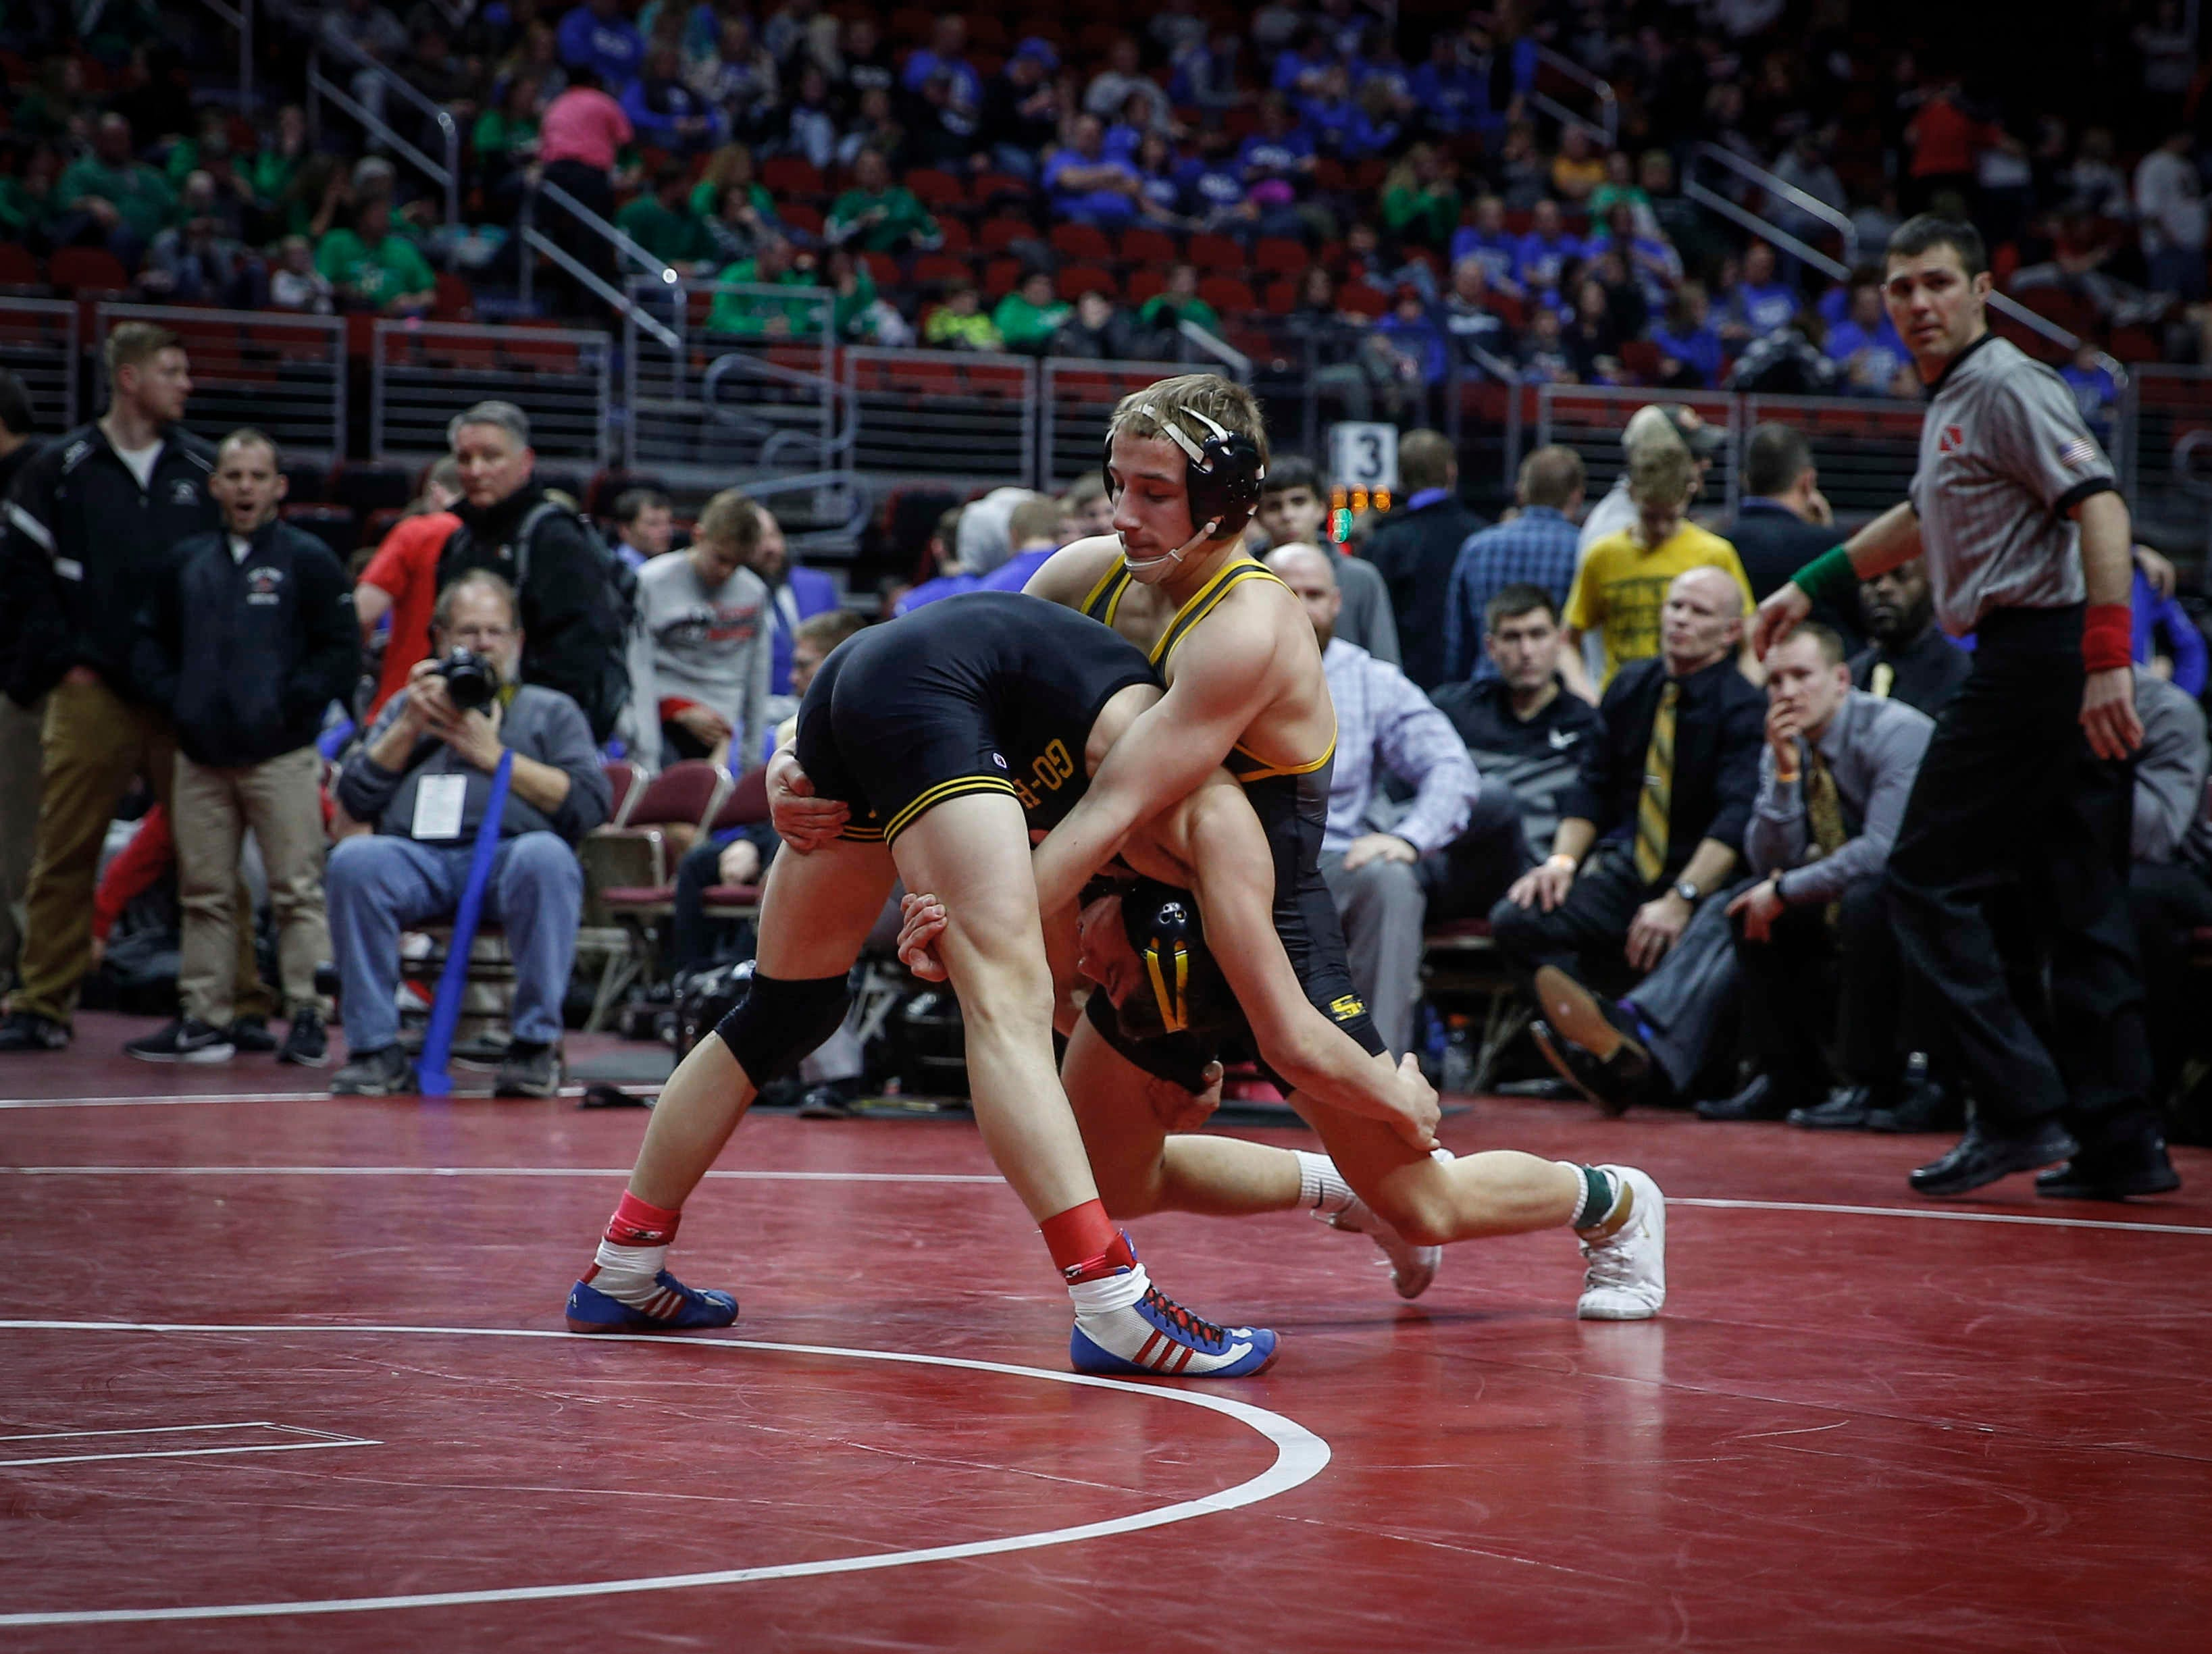 Waverly-Shell Rock's Evan Yant, left, drives in on Southeast Polk's Carson Martinson at 132 pounds during the 2019 Iowa high school dual wrestling state tournament on Wednesday, Feb. 13, 2019, at Wells Fargo Arena in Des Moines.